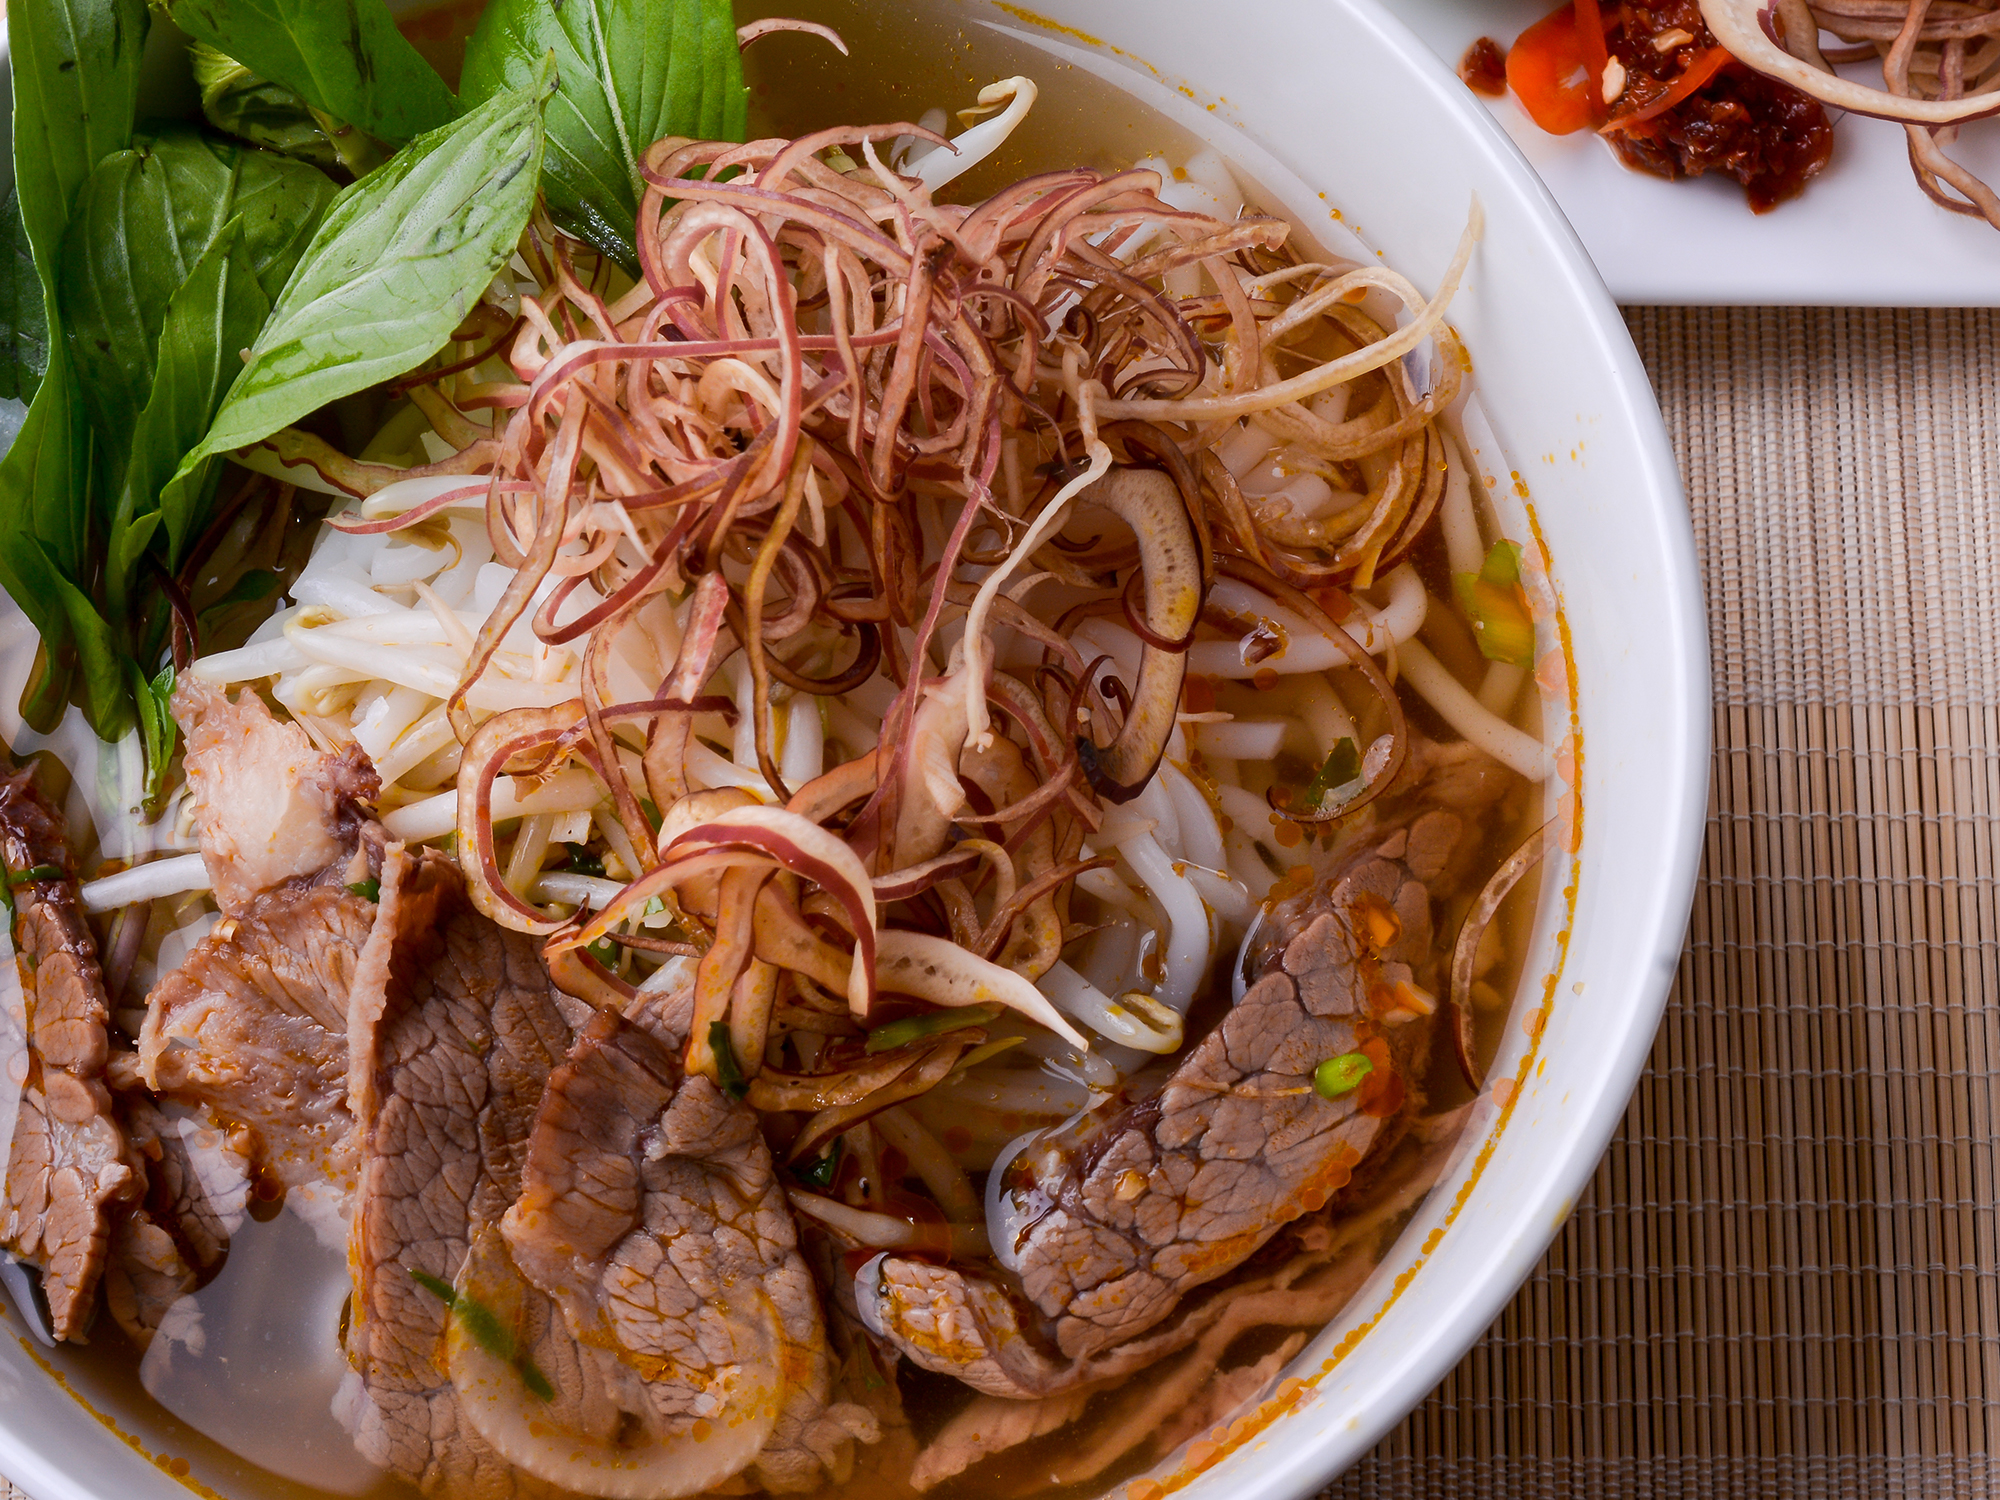 bun-bo-hue-is-preferred-the-second-after-pho-when-tasting-specialties-in-vietnam-saigon-riders